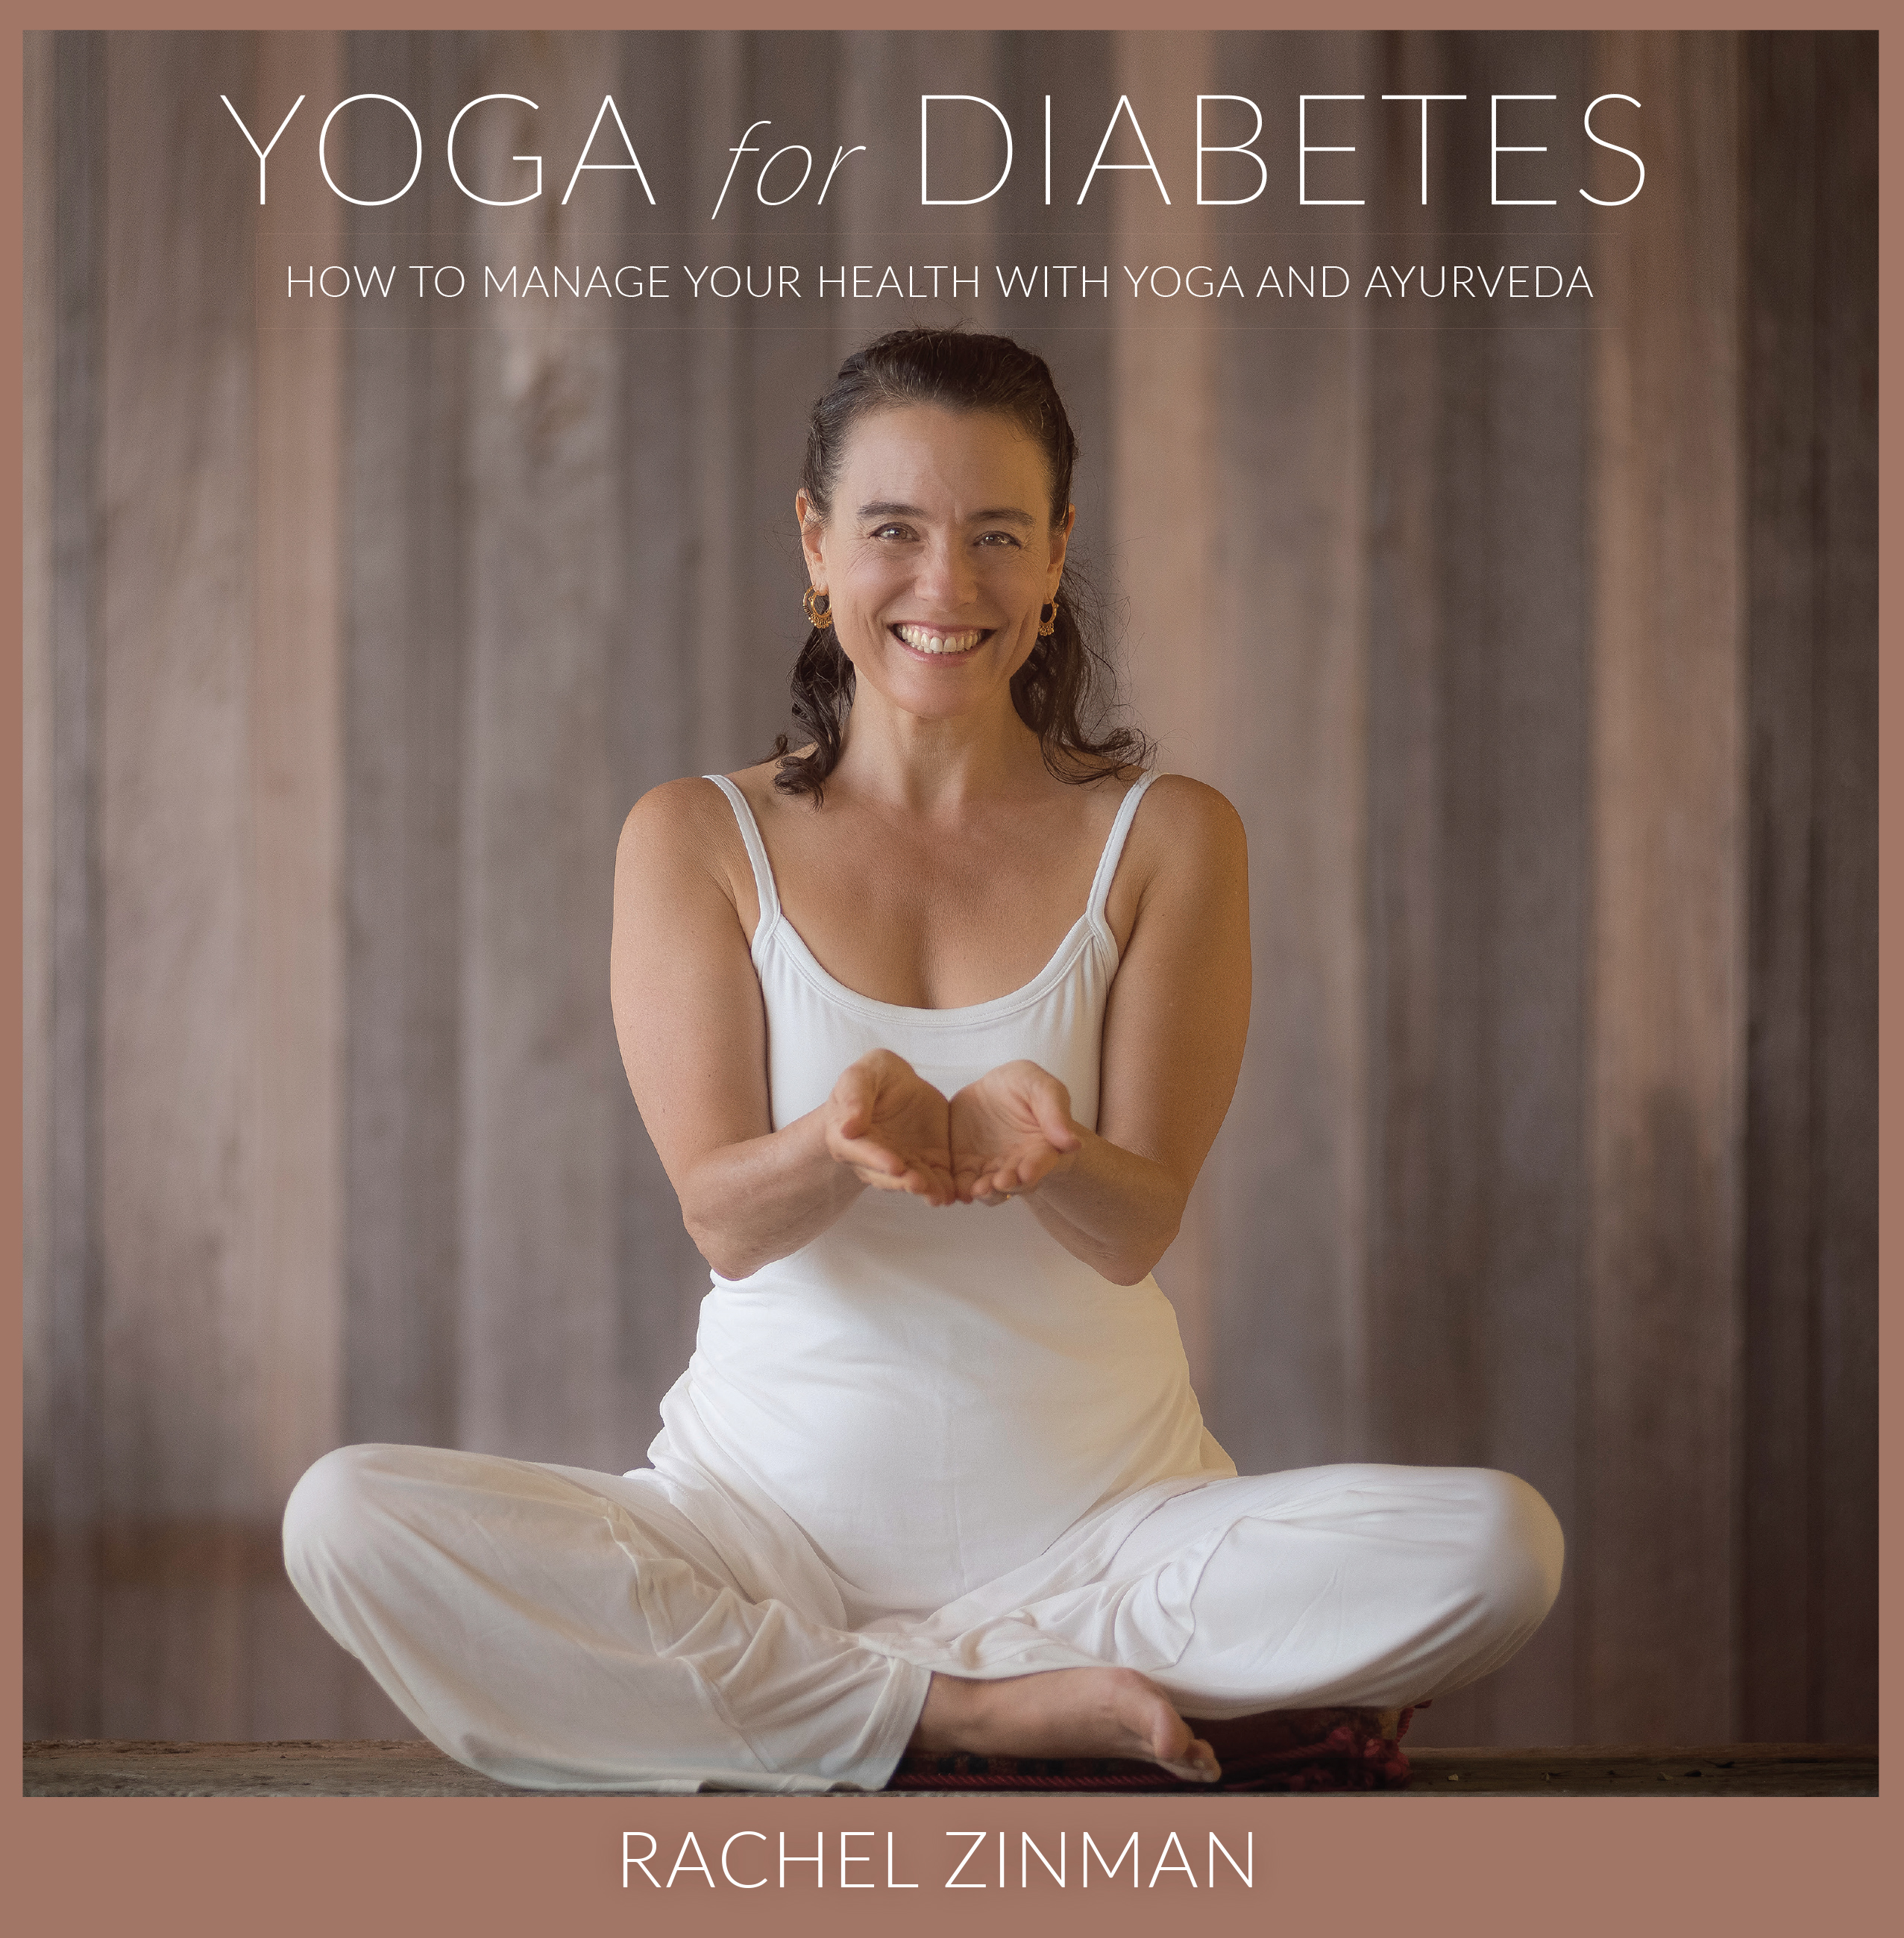 Book Review: Yoga for Diabetes by Rachel Zinman